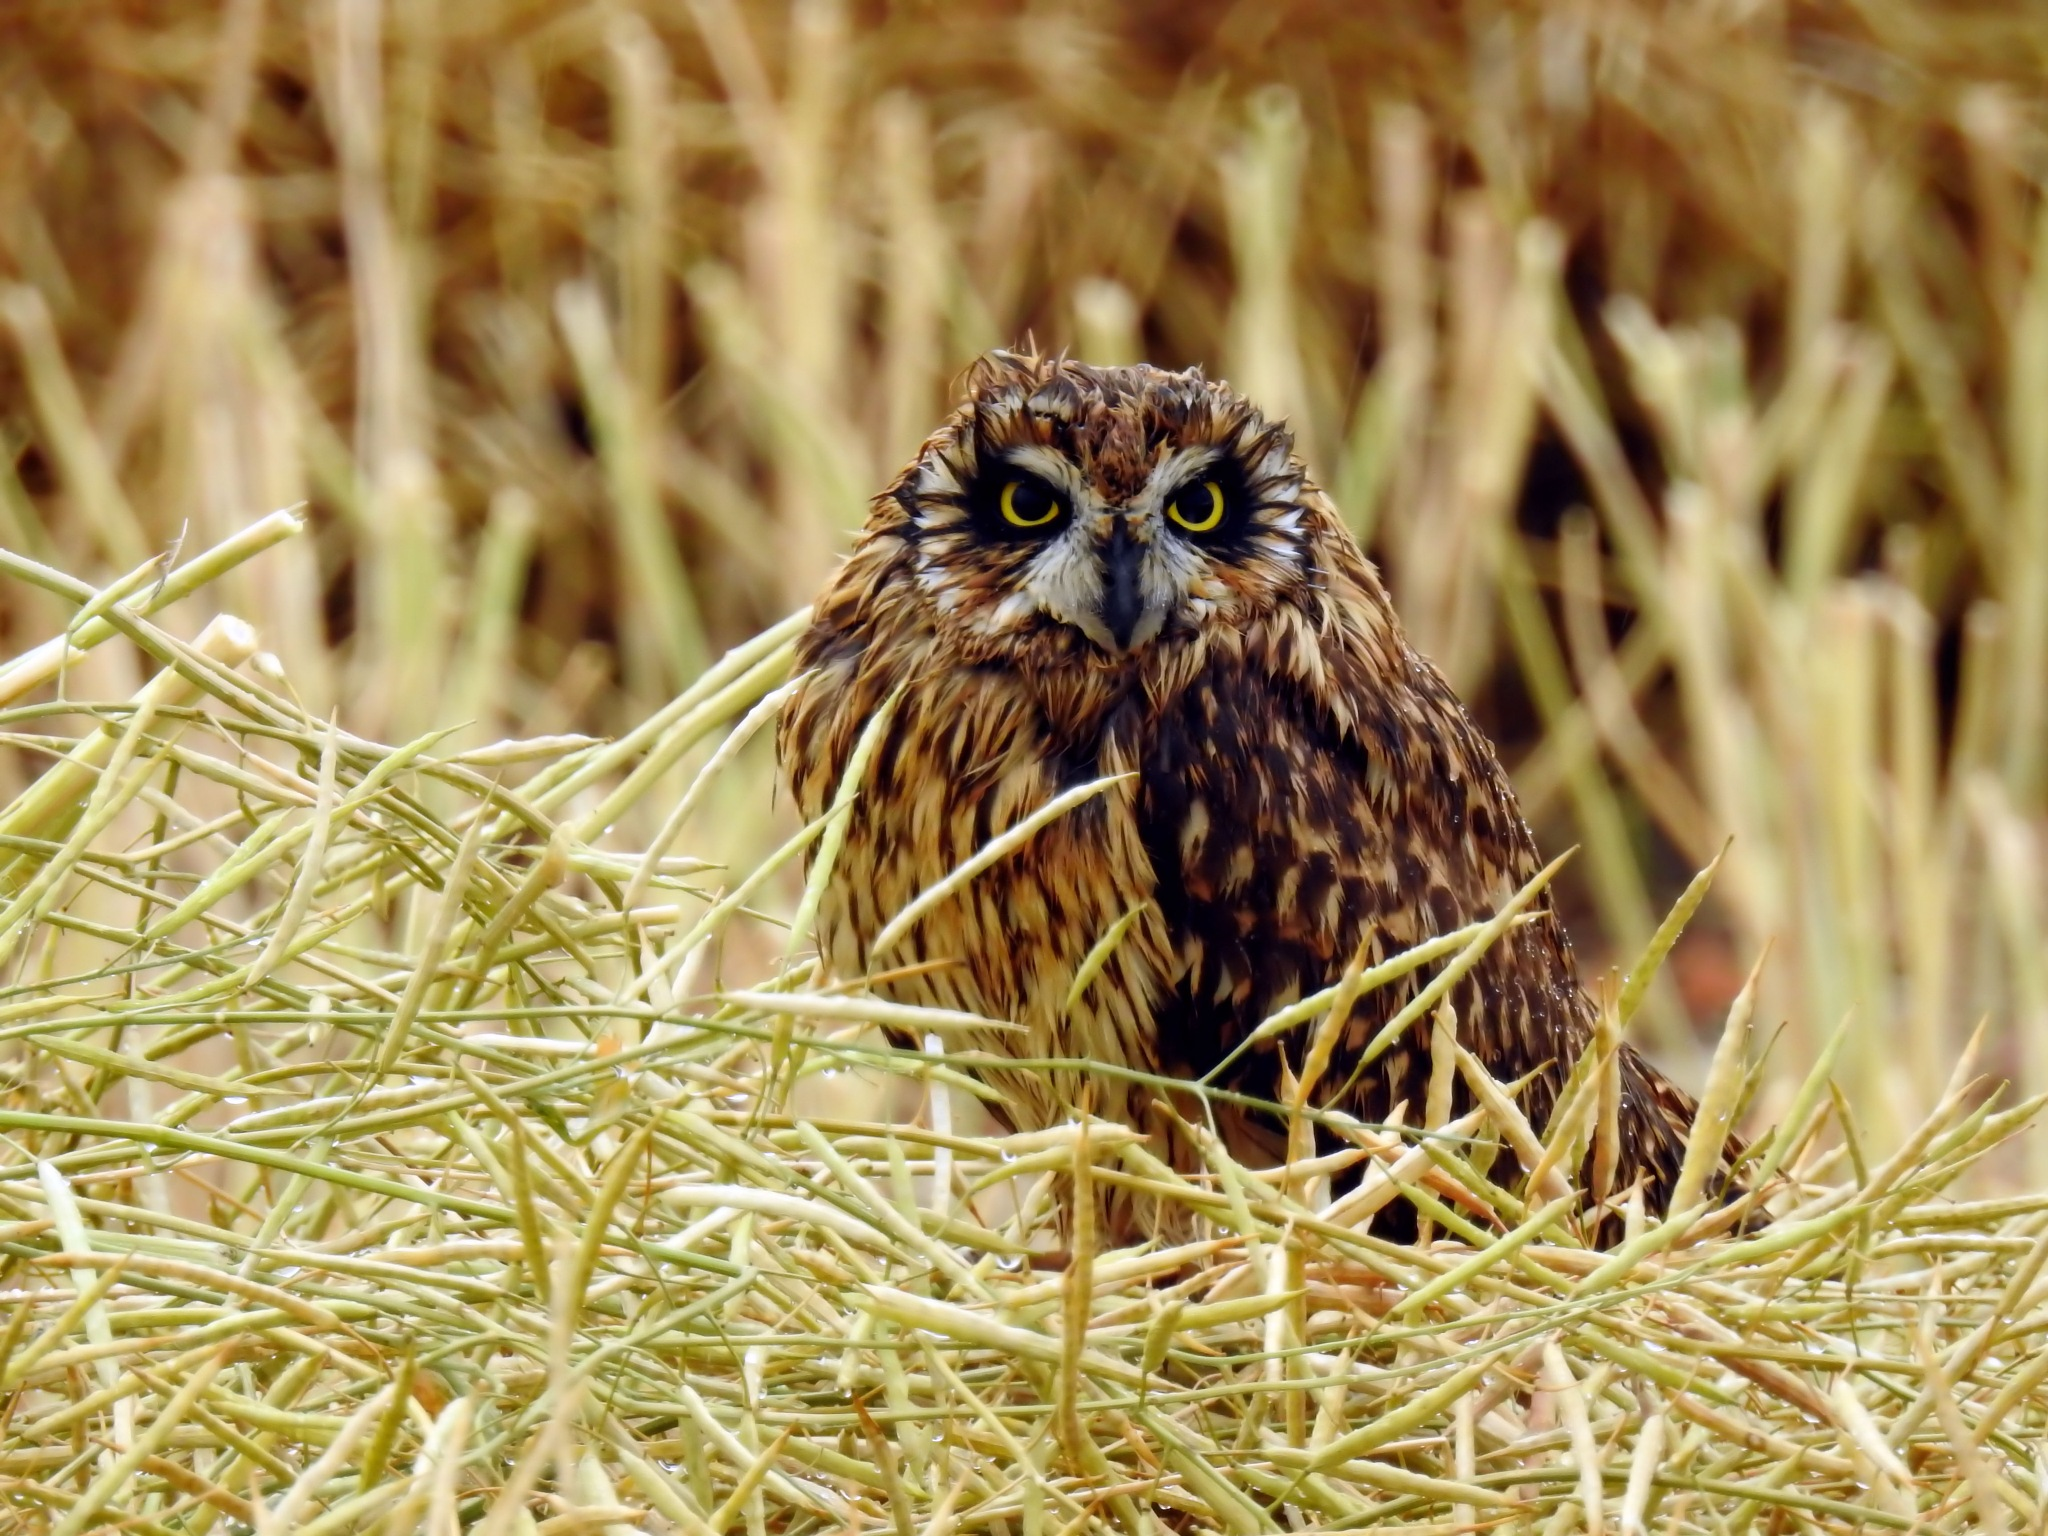 Irritated Saw Whet Owl by tricialpat